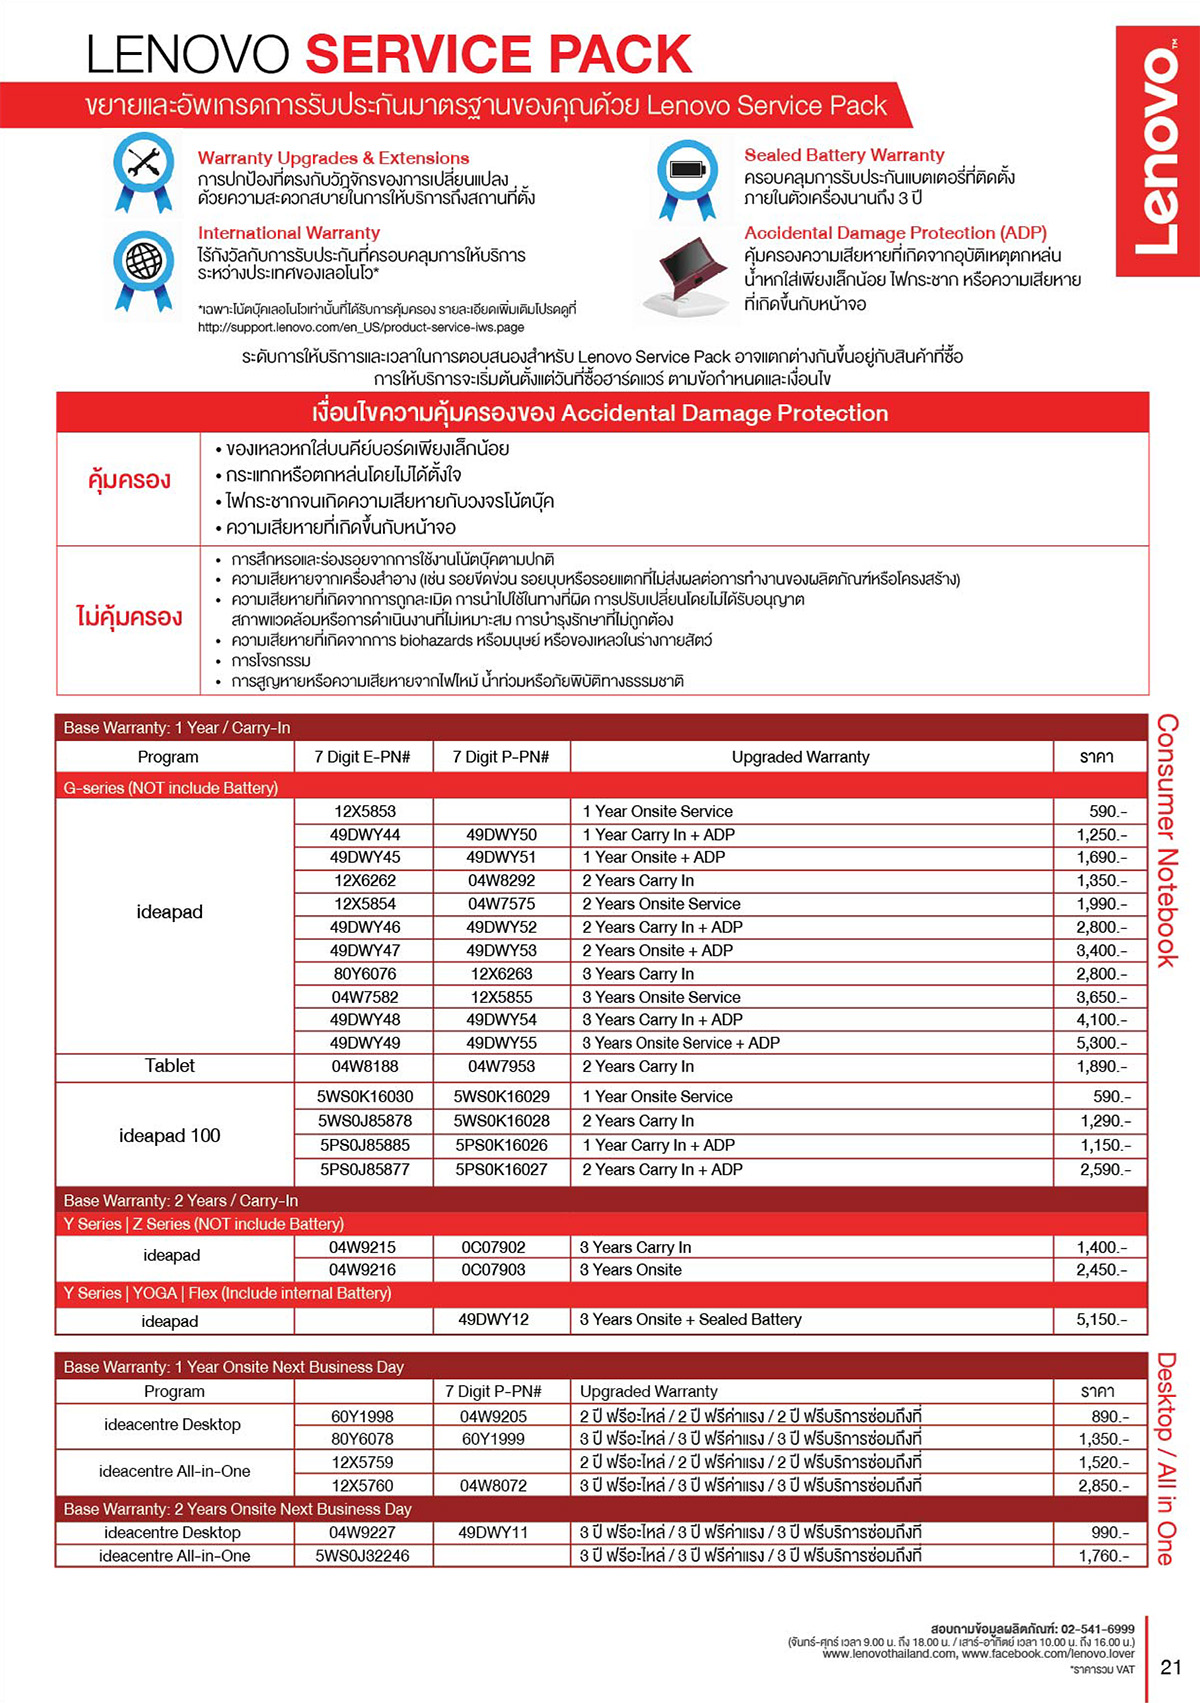 Lenovo Consumer Product Catalog Q2FY15_Final AW-21